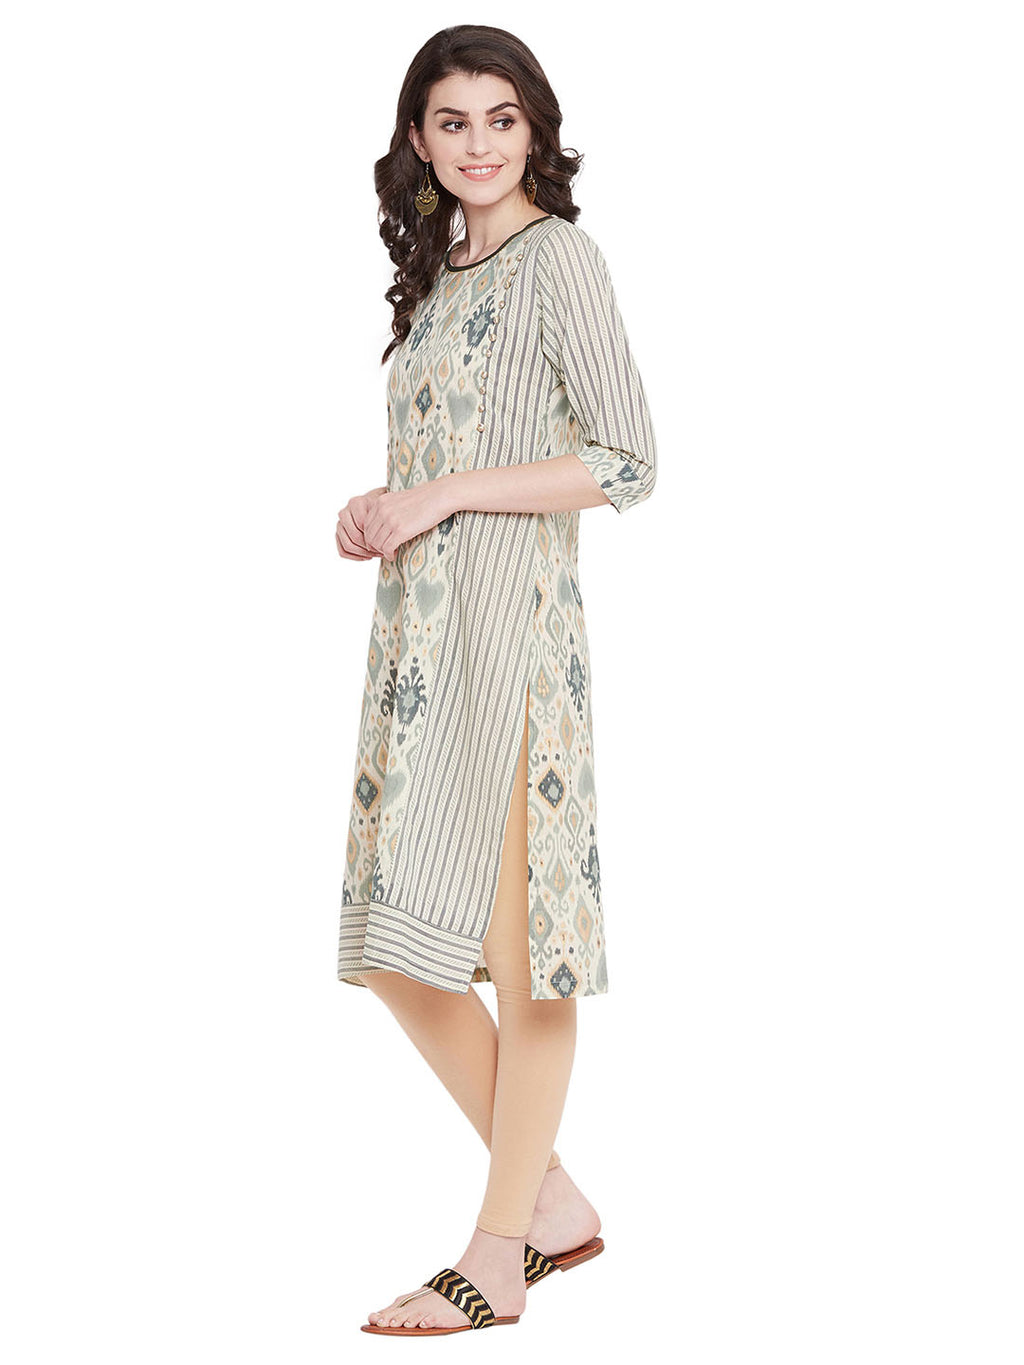 MEESAN Beige-Green Cotton Foil Printed Kurti for Women